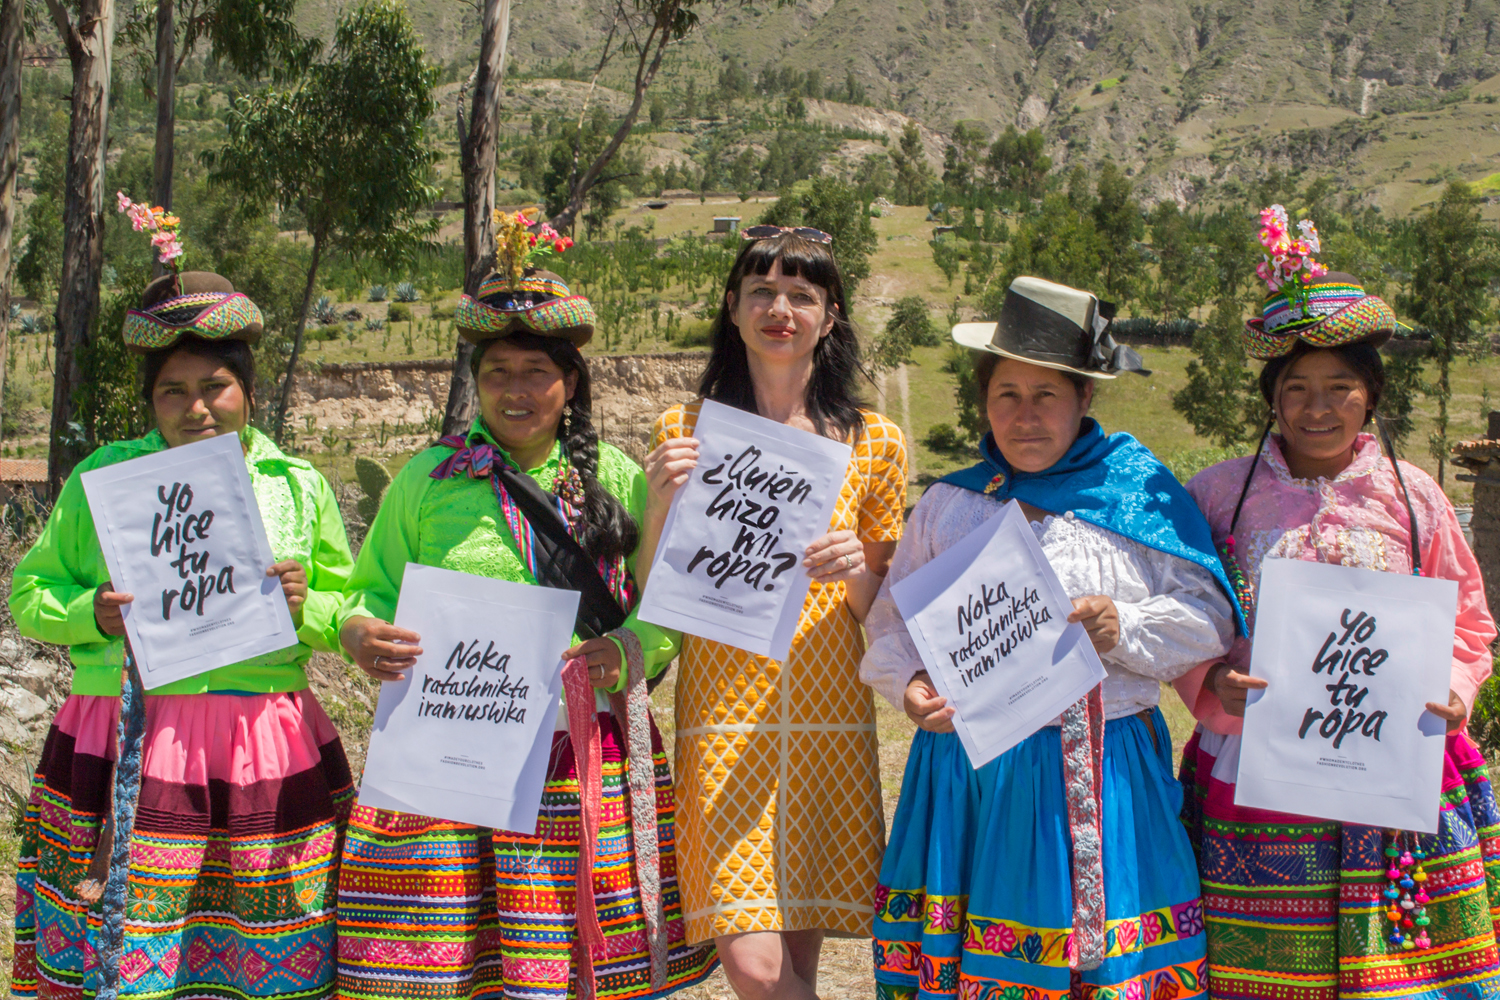 Carry Somers Co-founder, Fashion Revolution in Peru with embroiders by Miguel Lopez